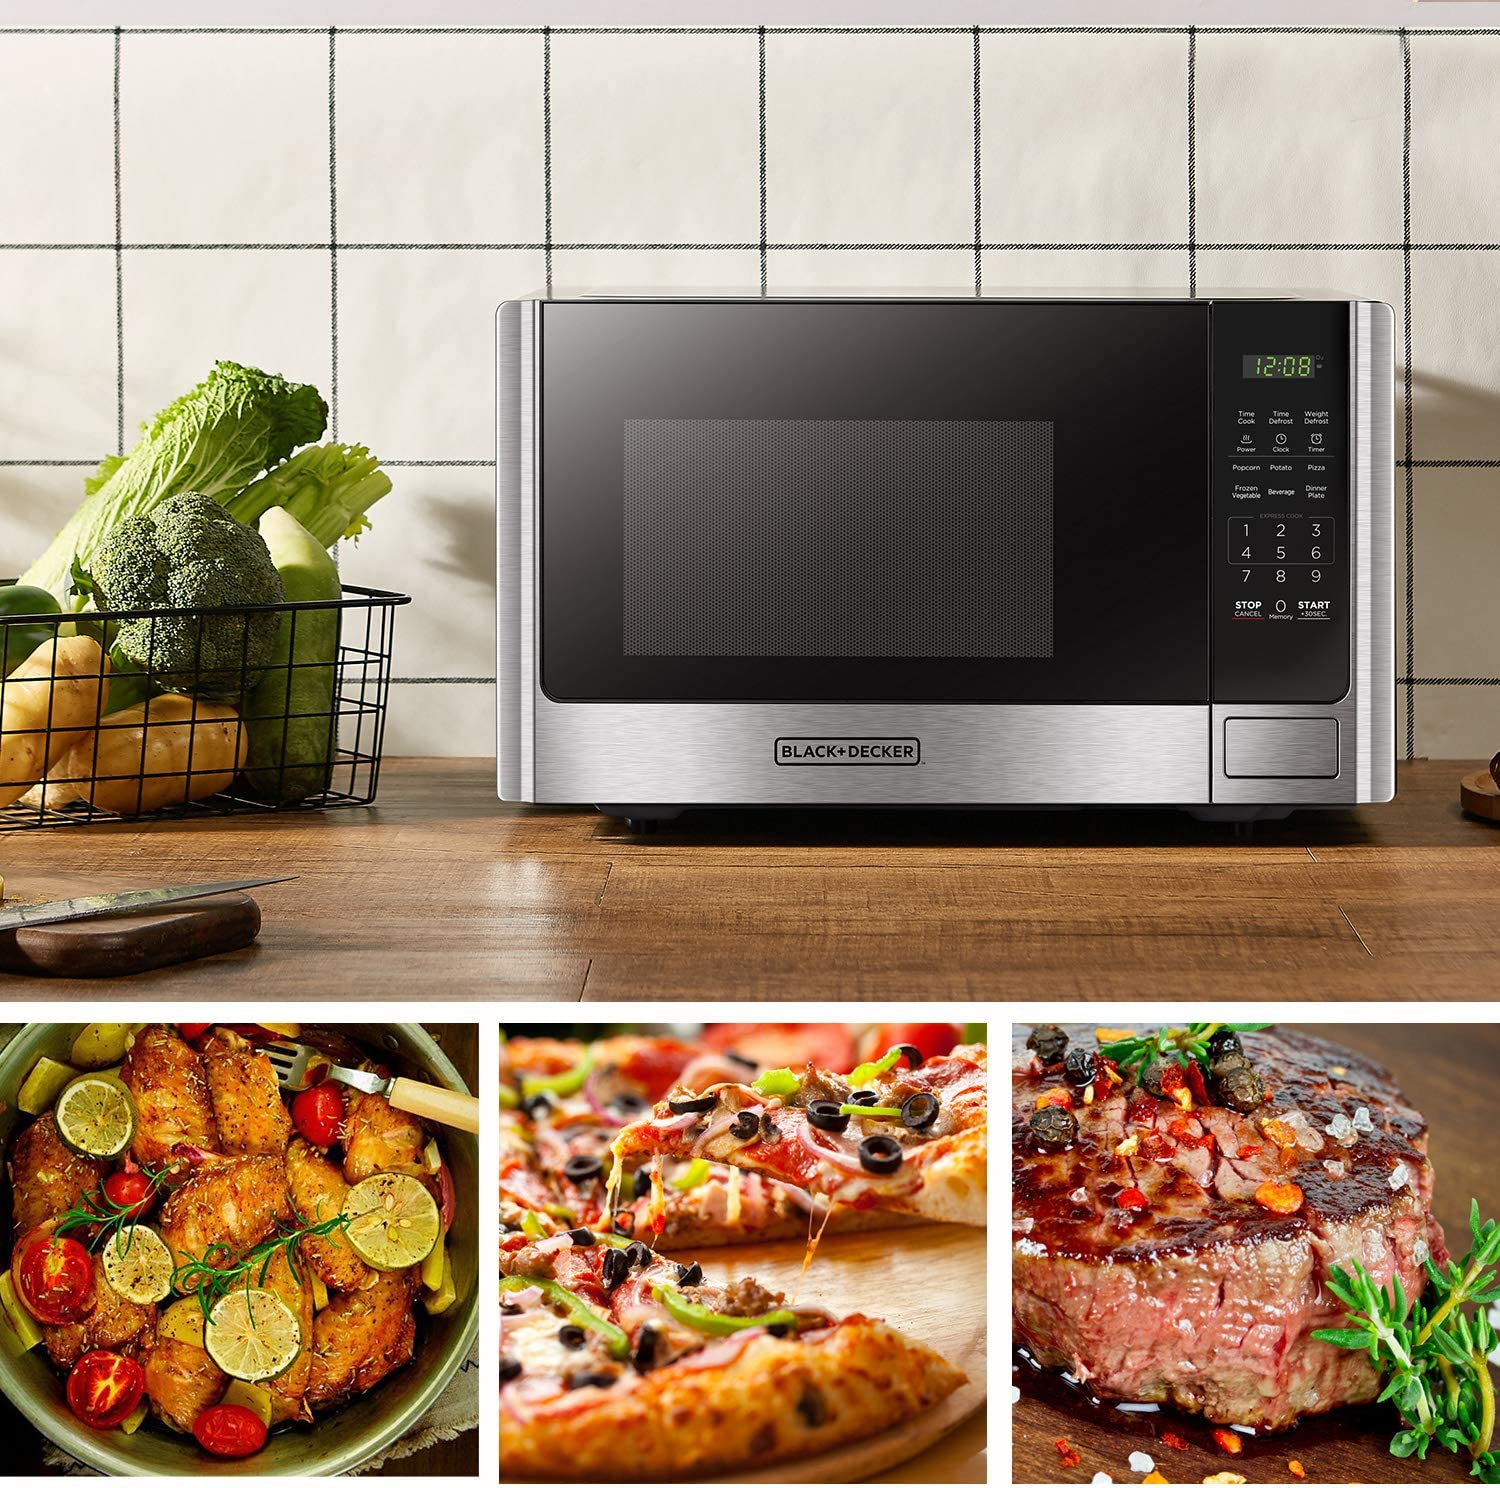 Black and Decker Microwave toaster oven